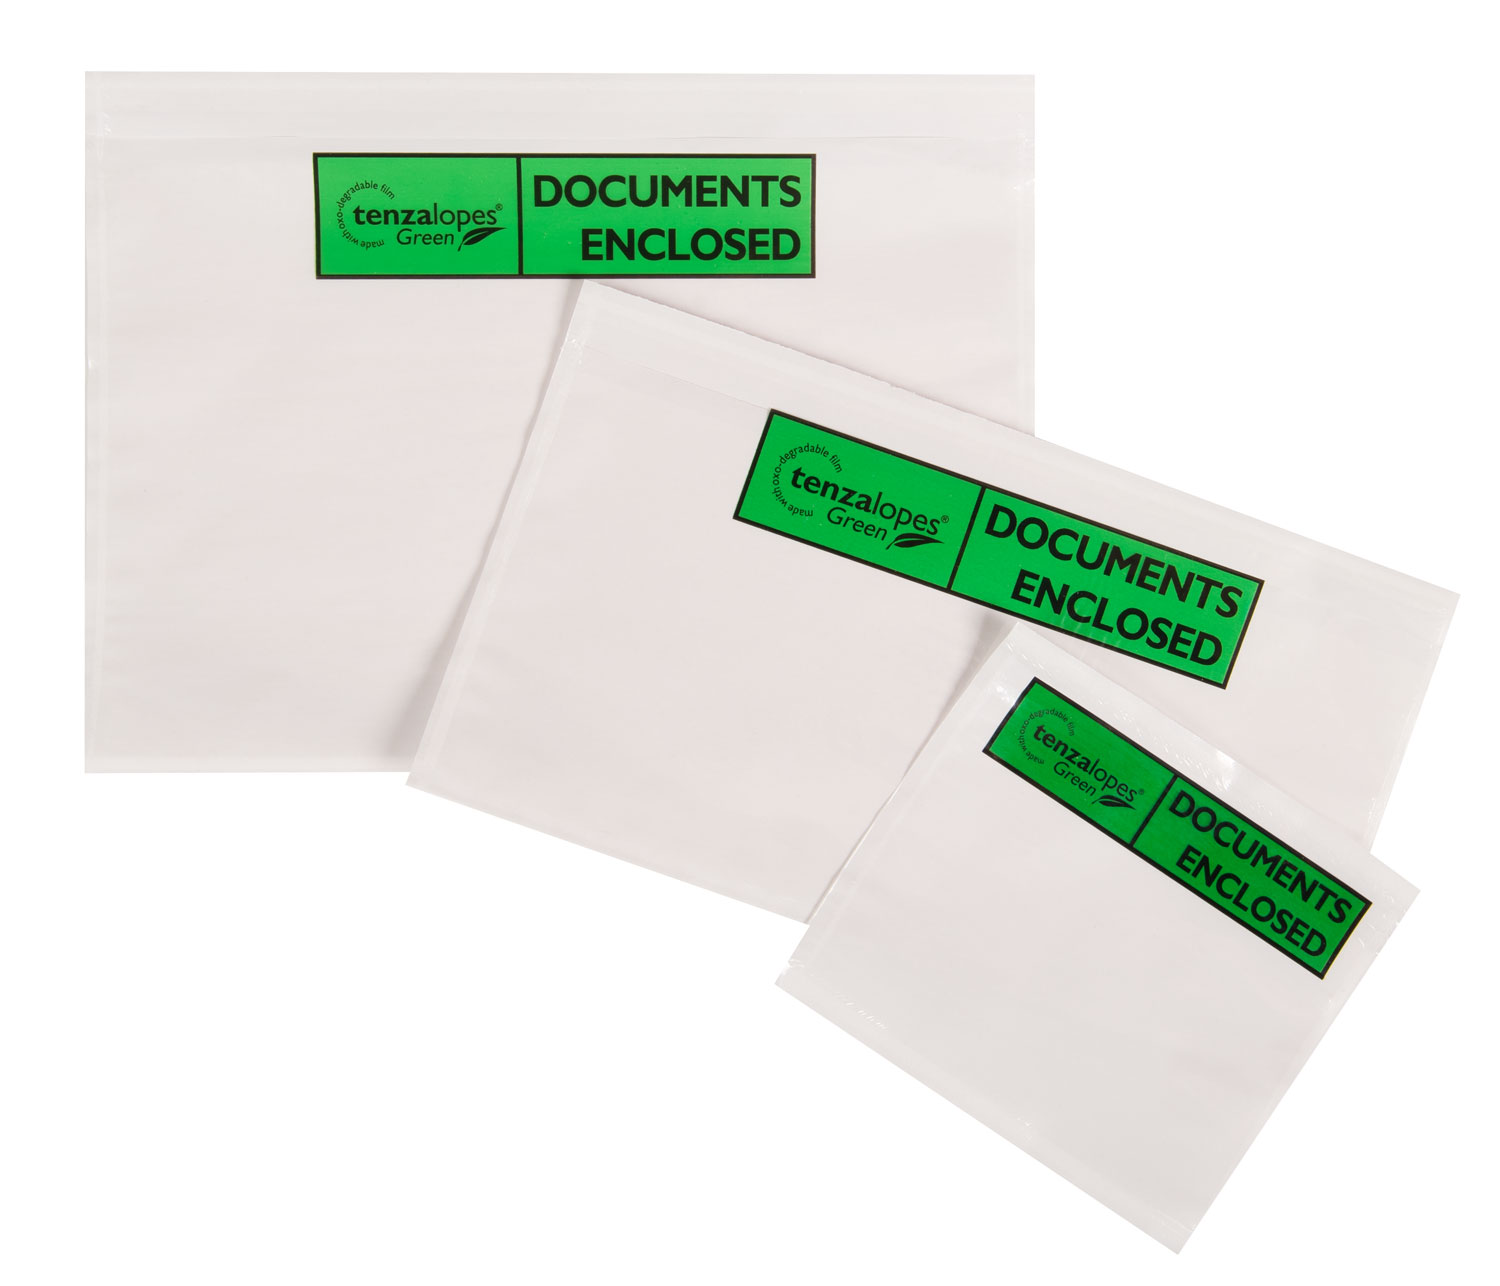 Tenzalopes Green Document Wallets, biodegradable, A5 size (printed DOCUMENTS ENCLOSED), Price per Box 1000